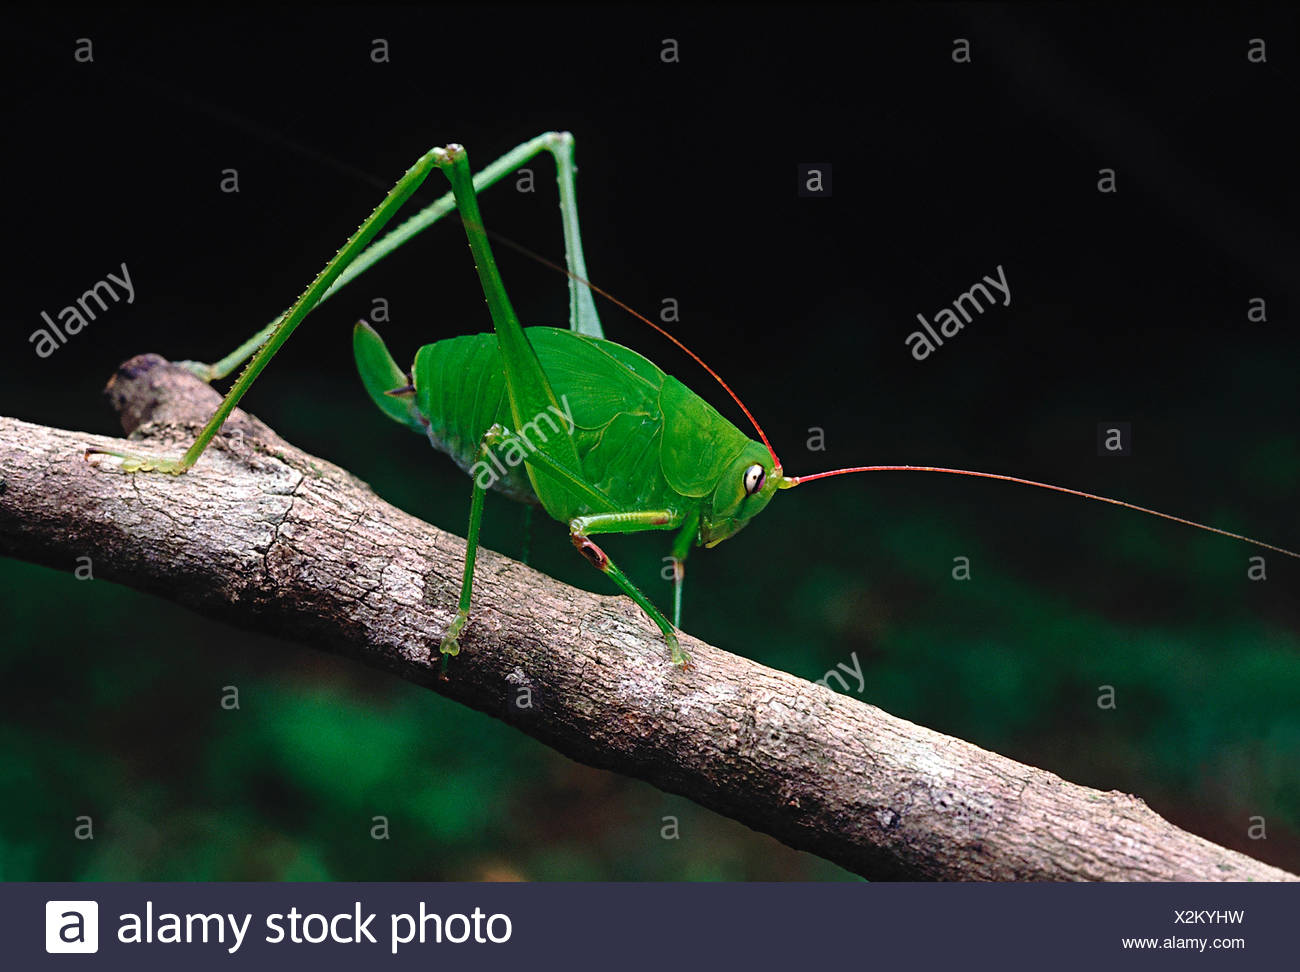 Bush cricket. A cricket with extremely long antennae and hind legs. The body colour blends in well with the greenery of the fore - Stock Image